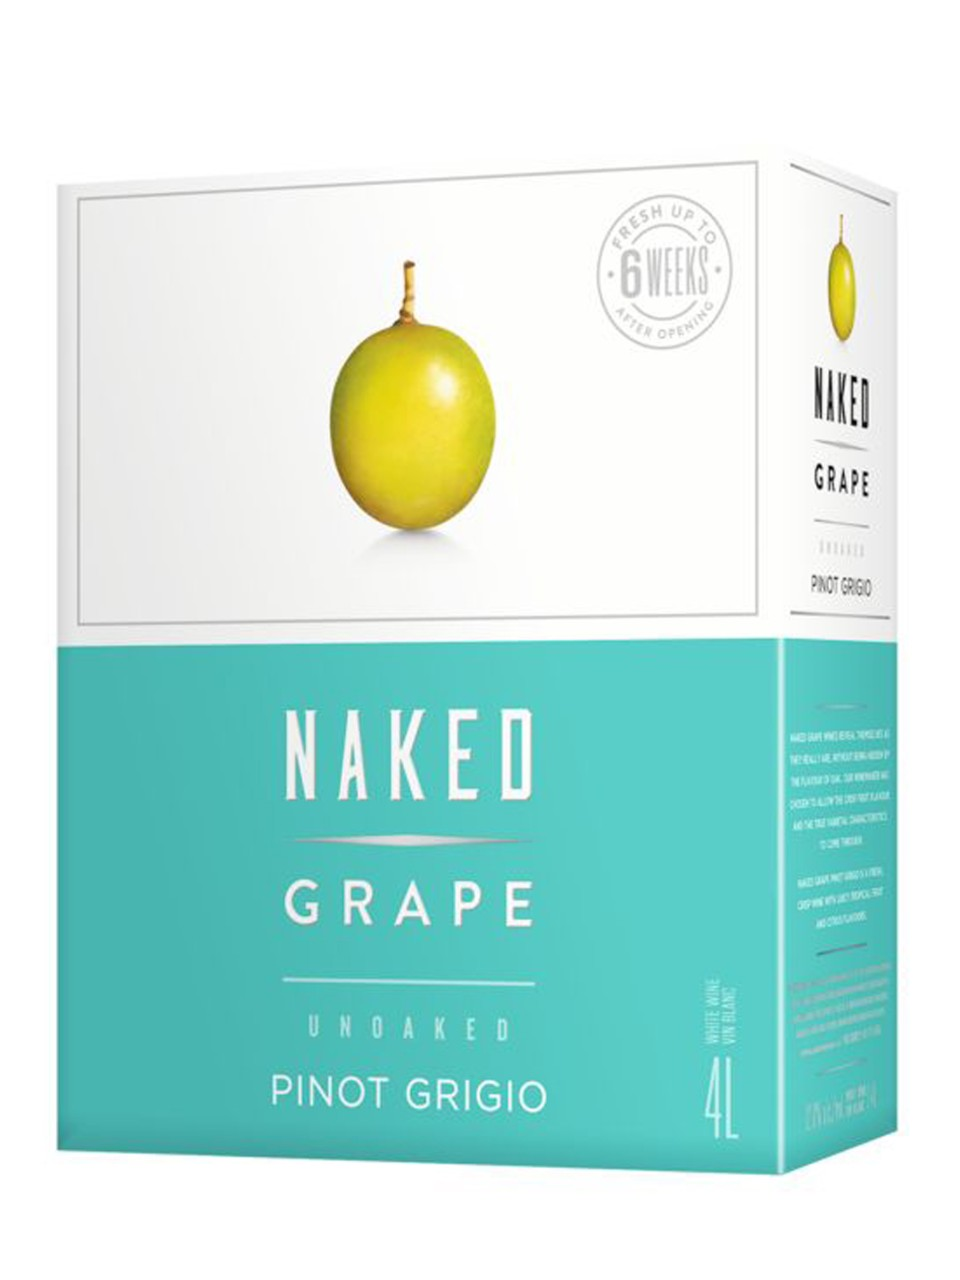 Naked Grape Pinot Grigio from LCBO